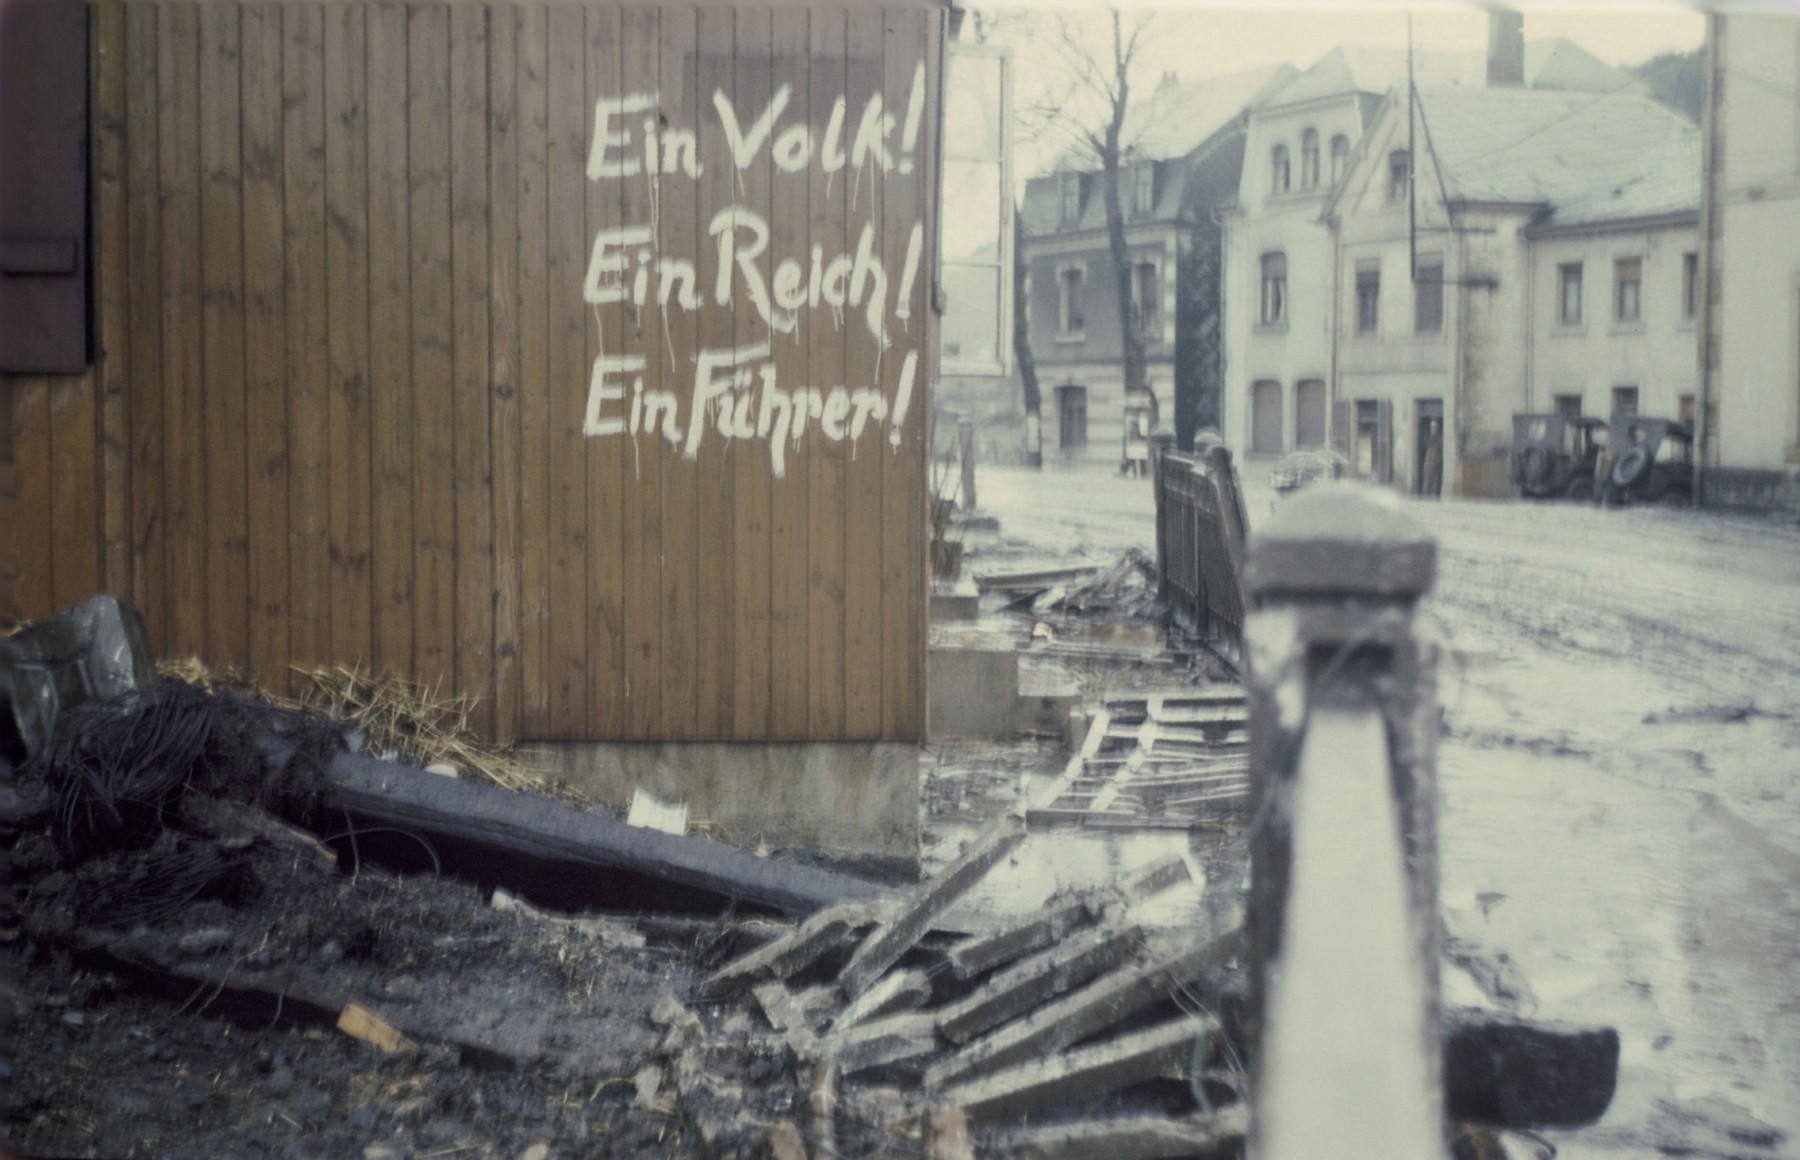 """German graffiti painted on the wall of a wooden building on a bomb-damaged street near the Dachau concentration camp.  The graffiti reads: """"One People! One Realm! One Leader!"""""""